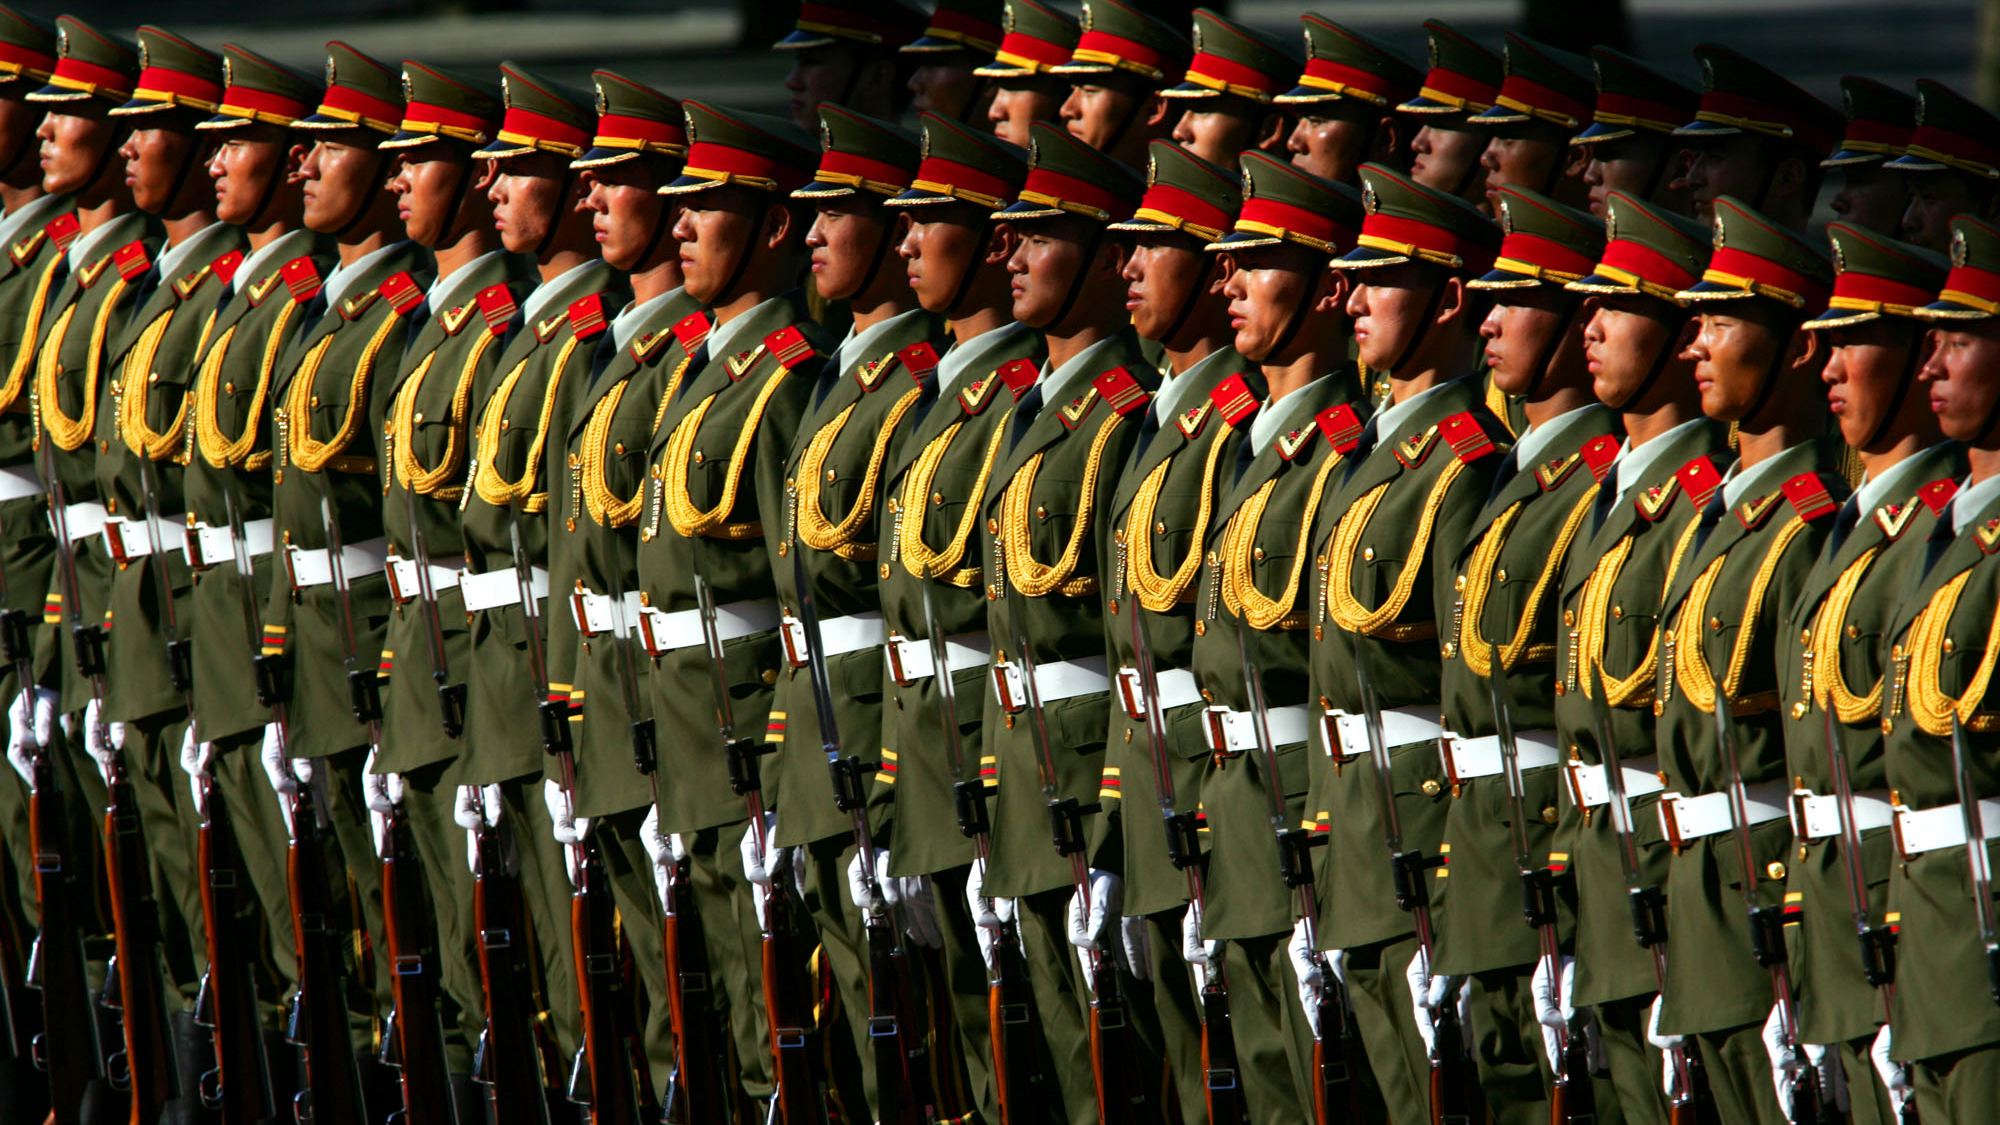 """Chinese soldiers in Tiananmen Square in Beijing during an official ceremony in CHina walk (photo from 06/02/05). The war of the future is run in cyberspace. The cyber warriors will no longer meet in the physical world, but to enforce the will of the political leadership with digital attacks. The aim of these attacks will no longer be the physical destruction, but the critical infrastructure that are the lifeblood of a modern society: about energy networks, financial systems, military information networks and security systems. """"The cyber attackers are sitting in the People's Republic of China and fulfill the political, economic and patriotic standards of their masters from the Chinese Communist Party."""" With these steep theses Hagestad opened his book on """"21st Century Chinese Cyber-Warfare"""". (DAPD to-text) Photo: Elizabeth Dalziel / AP / DAPD"""